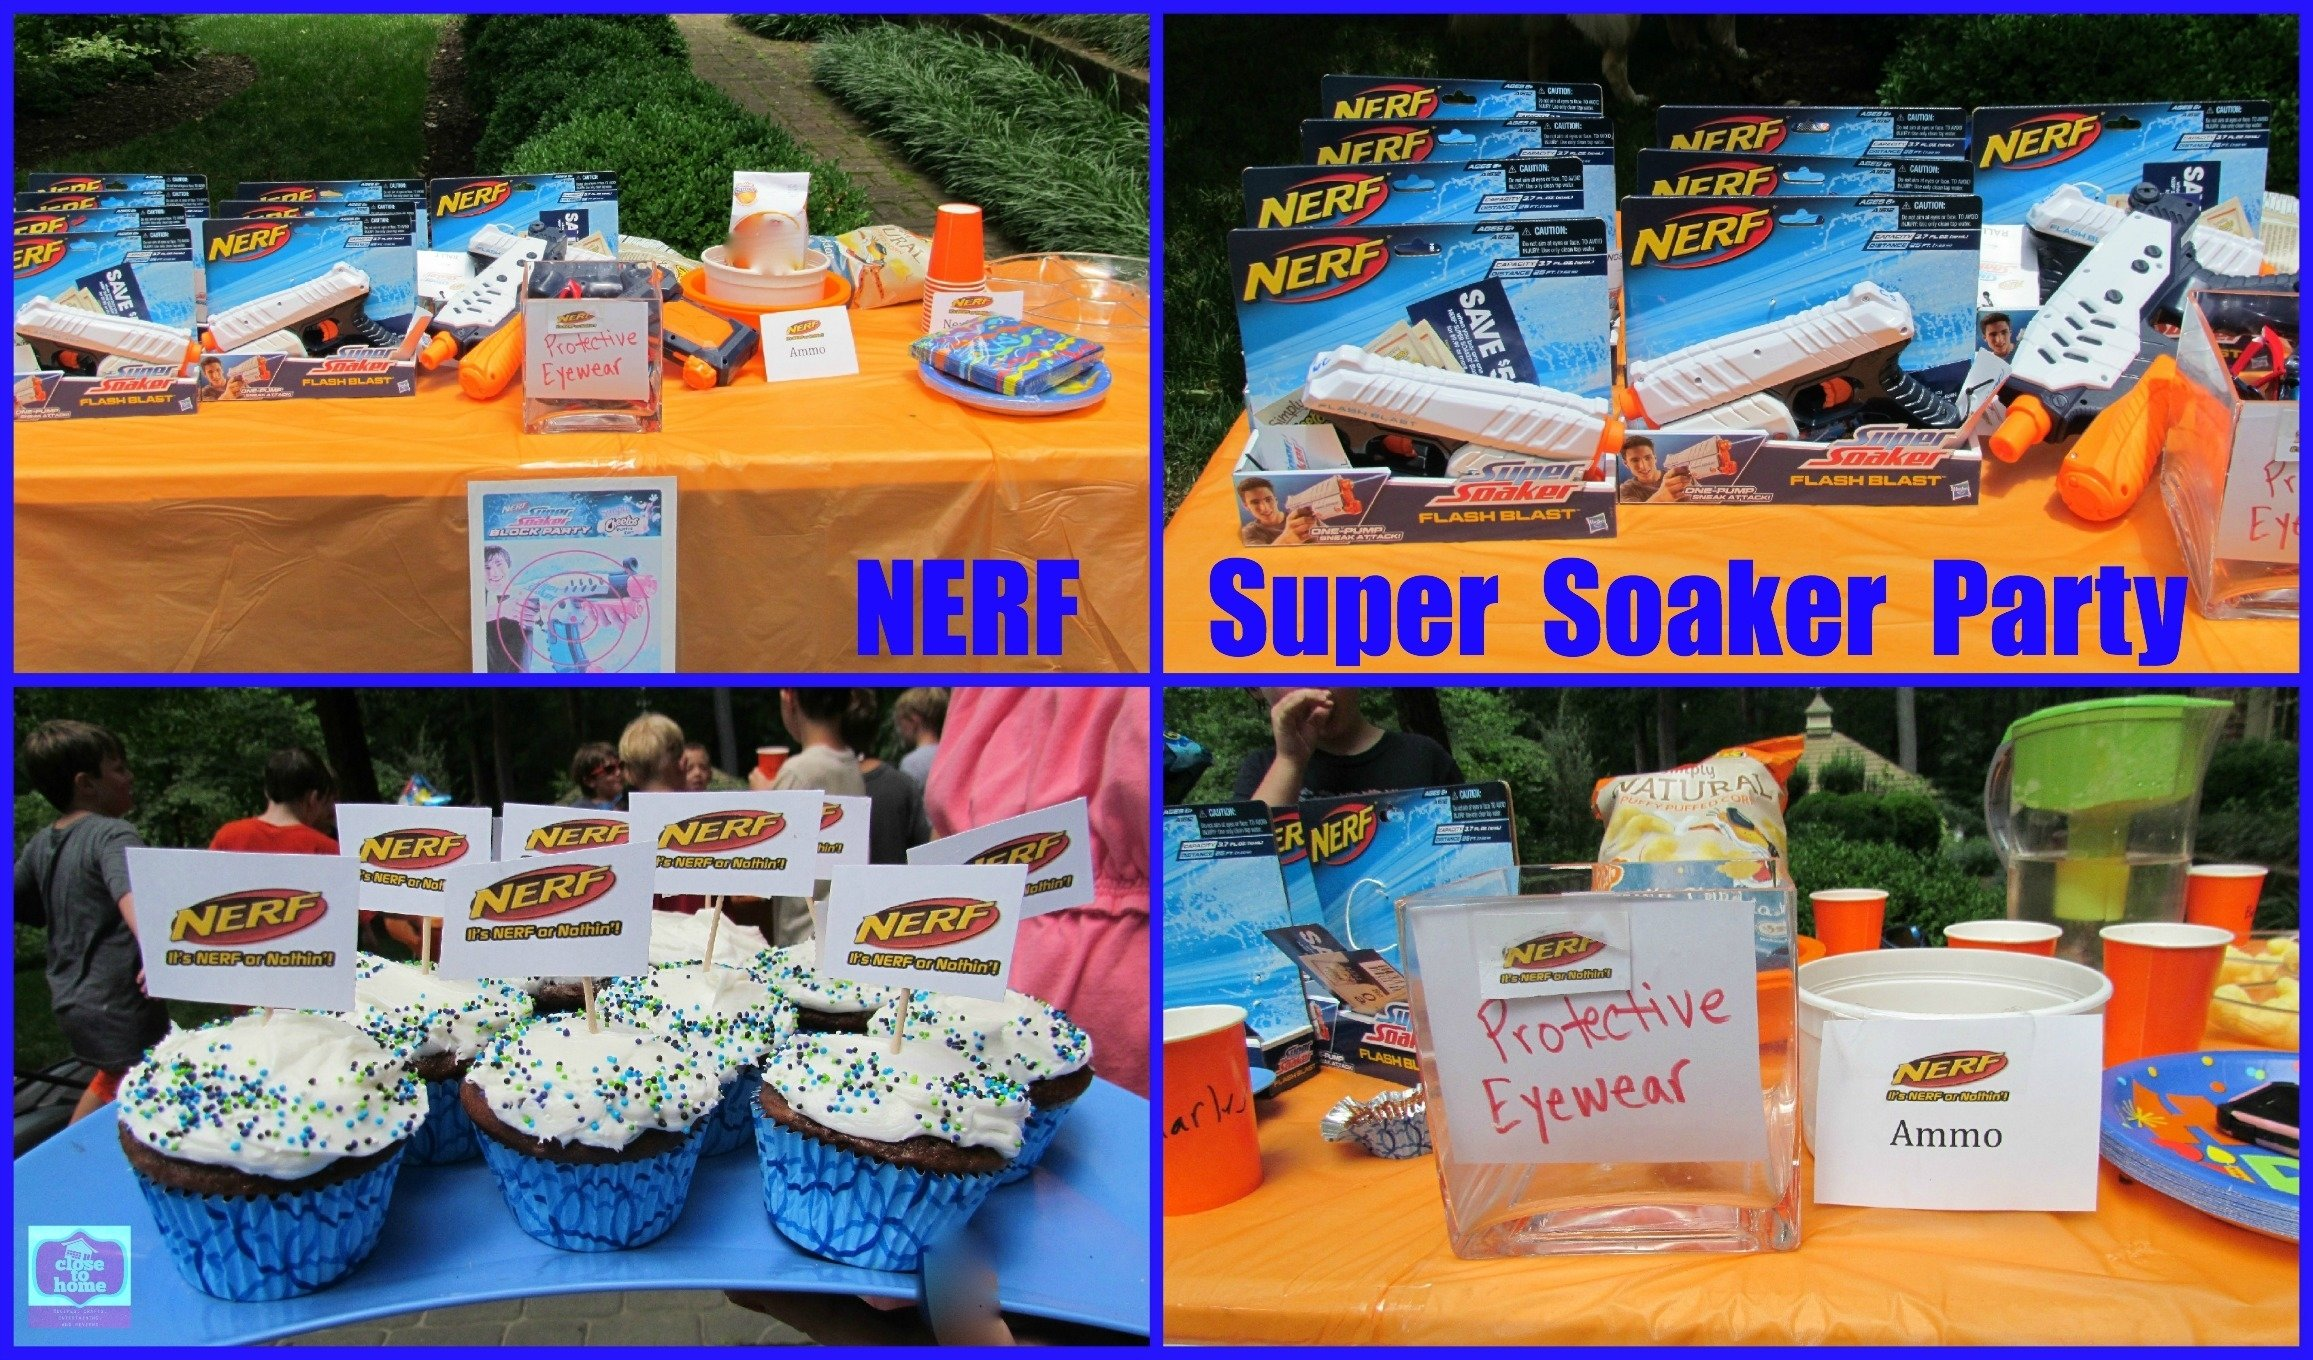 10 Lovely 4 Yr Old Boy Birthday Party Ideas summer birthday party ideas nerf super soaker boy wellsuited for 7 1 2021